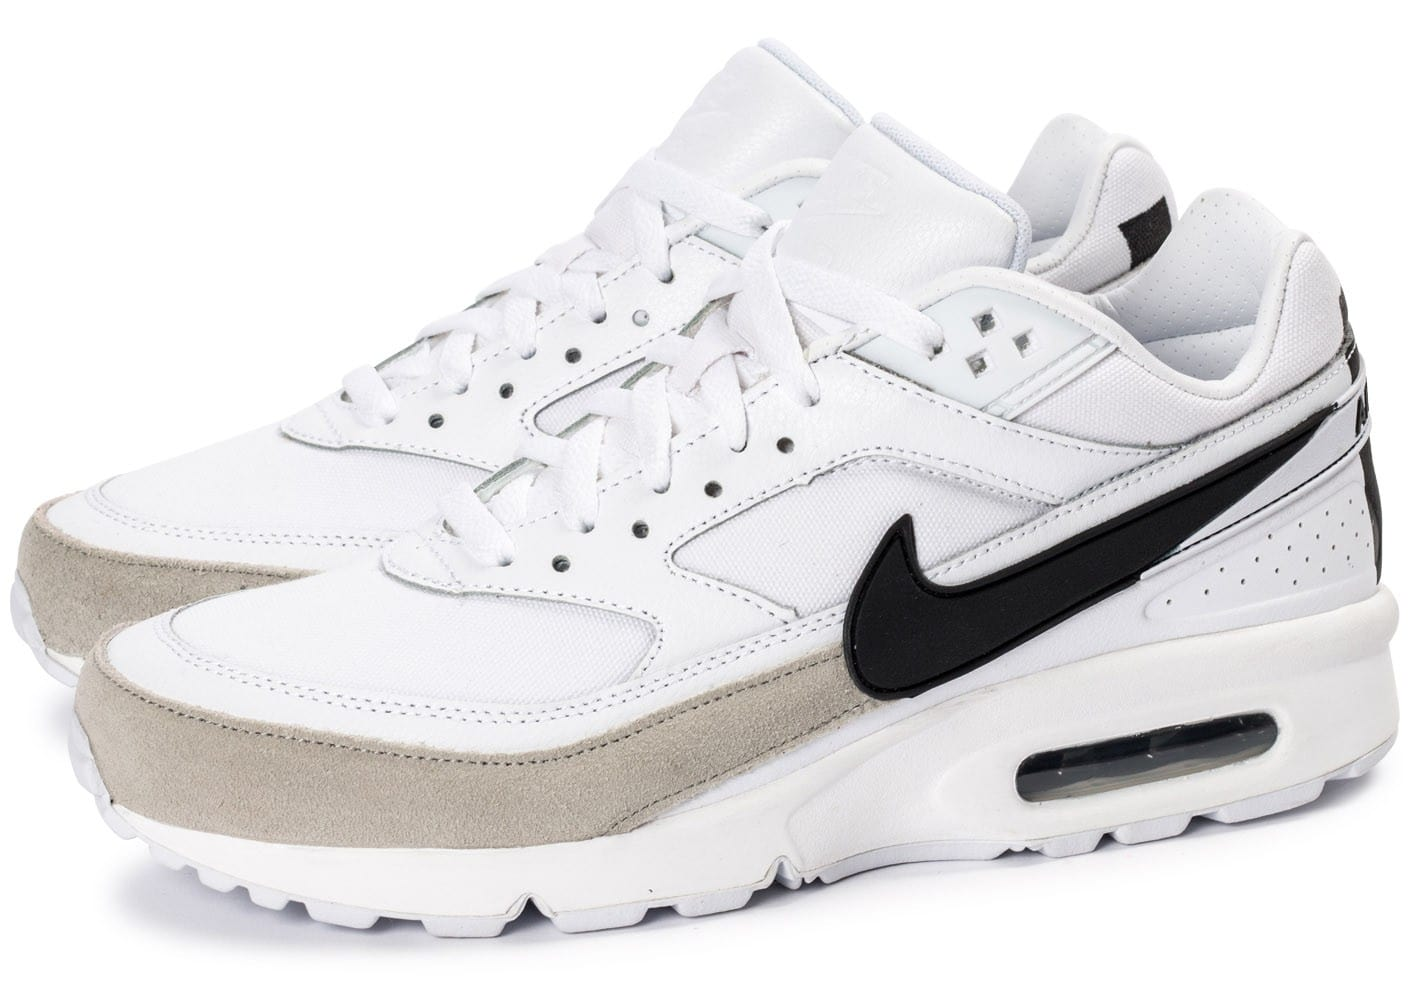 nike air max bw premium blanc noir chaussures baskets homme chausport. Black Bedroom Furniture Sets. Home Design Ideas